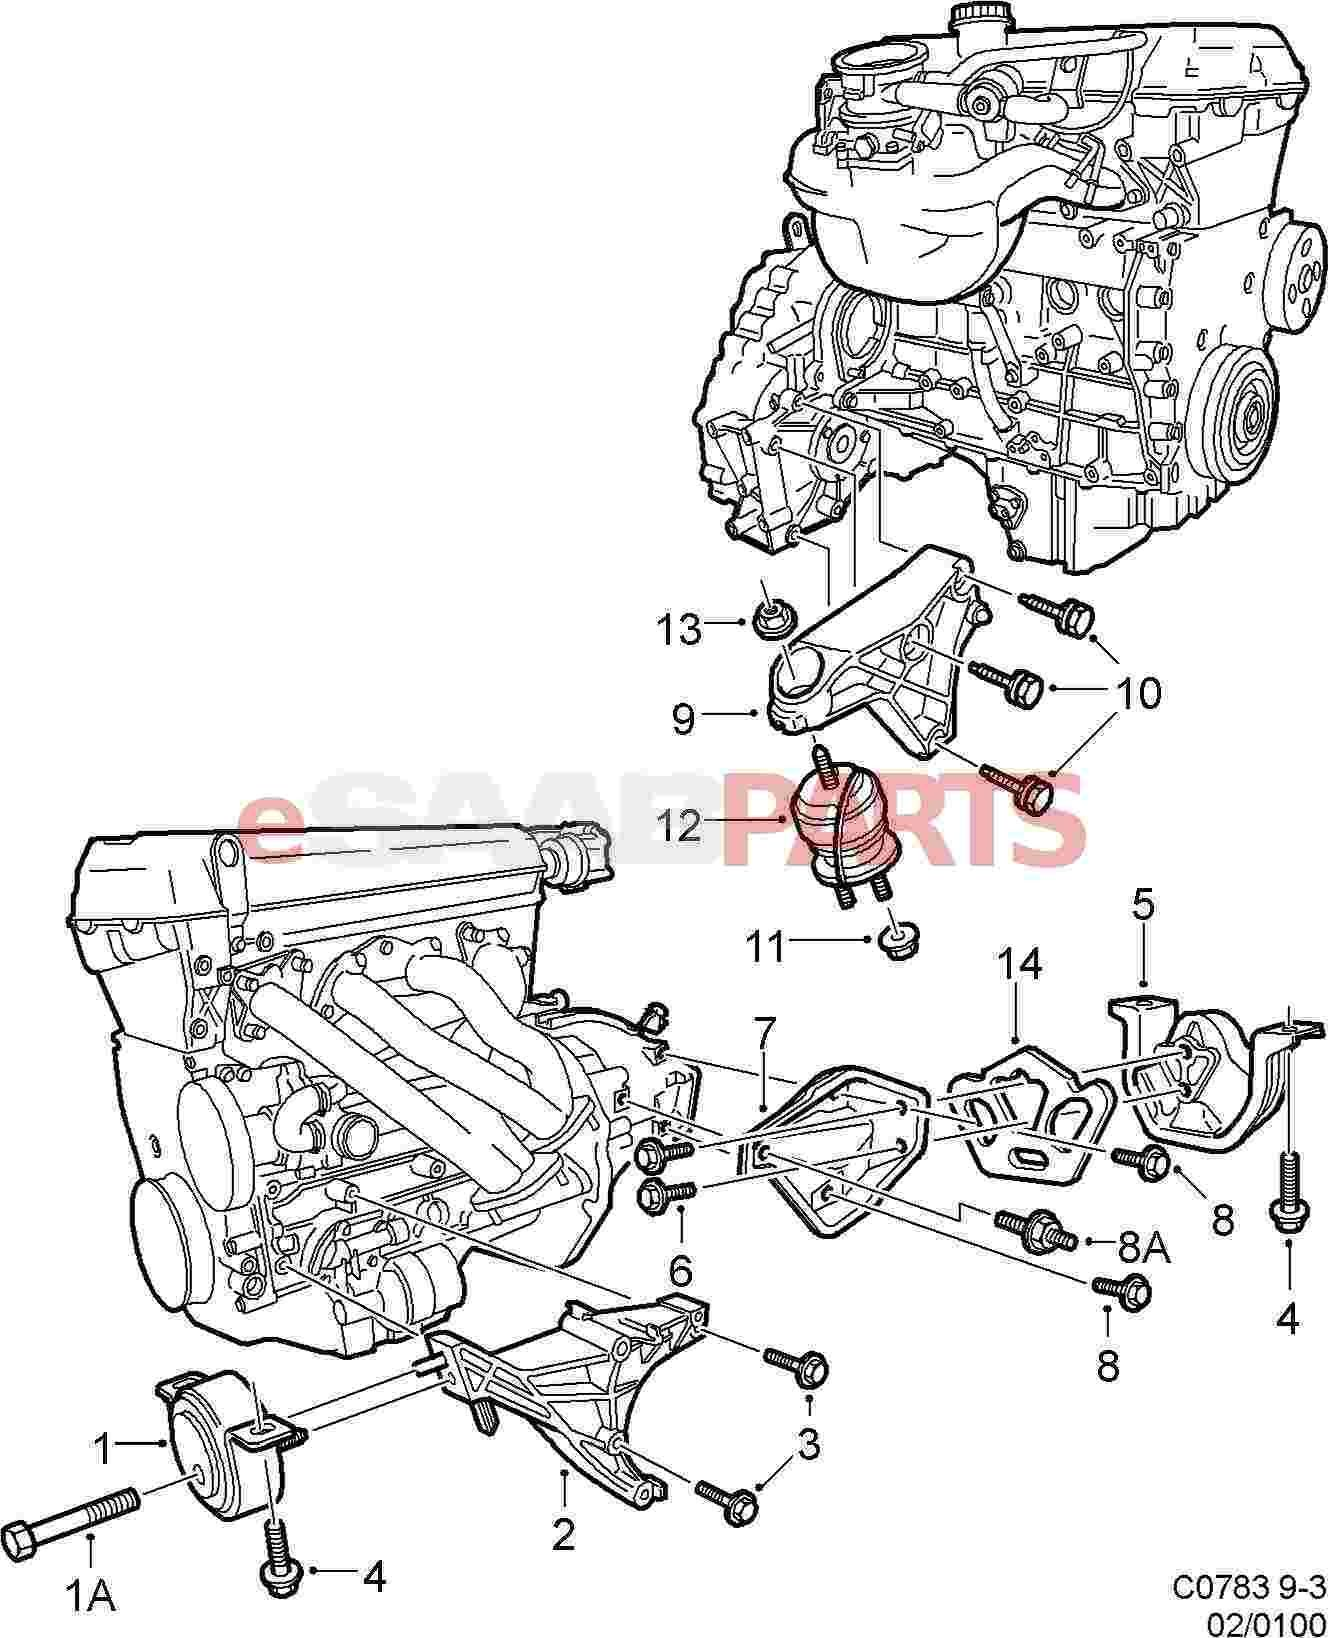 Saab 93 Engine Diagram